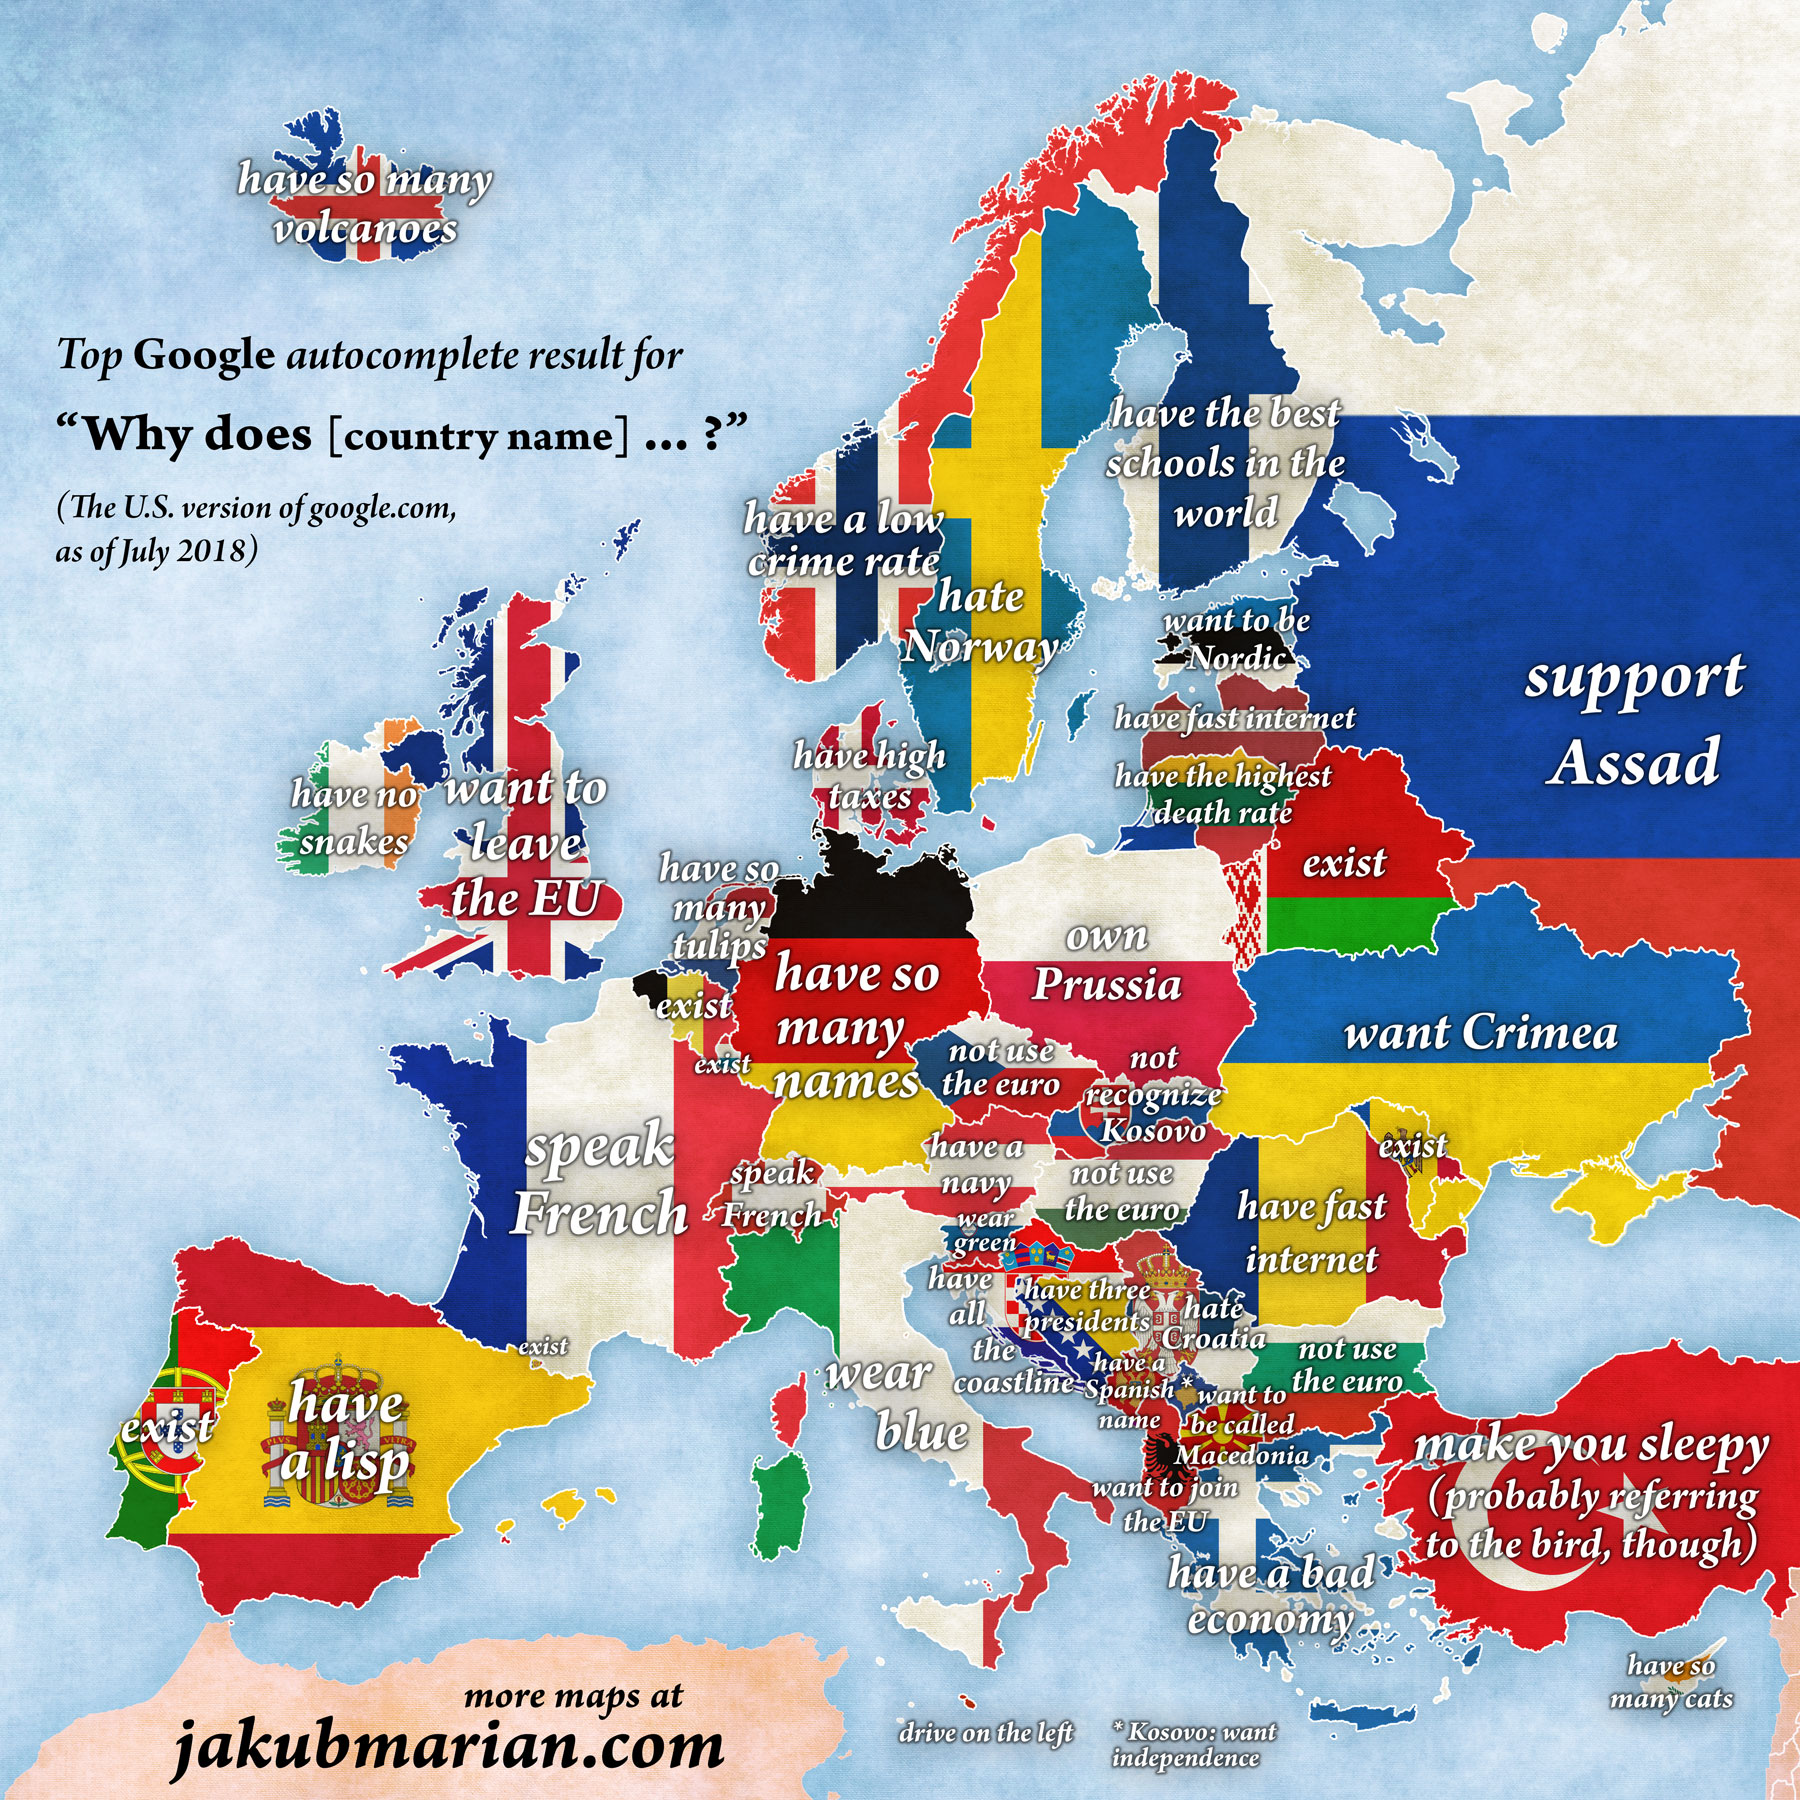 The map of autocomplete answers